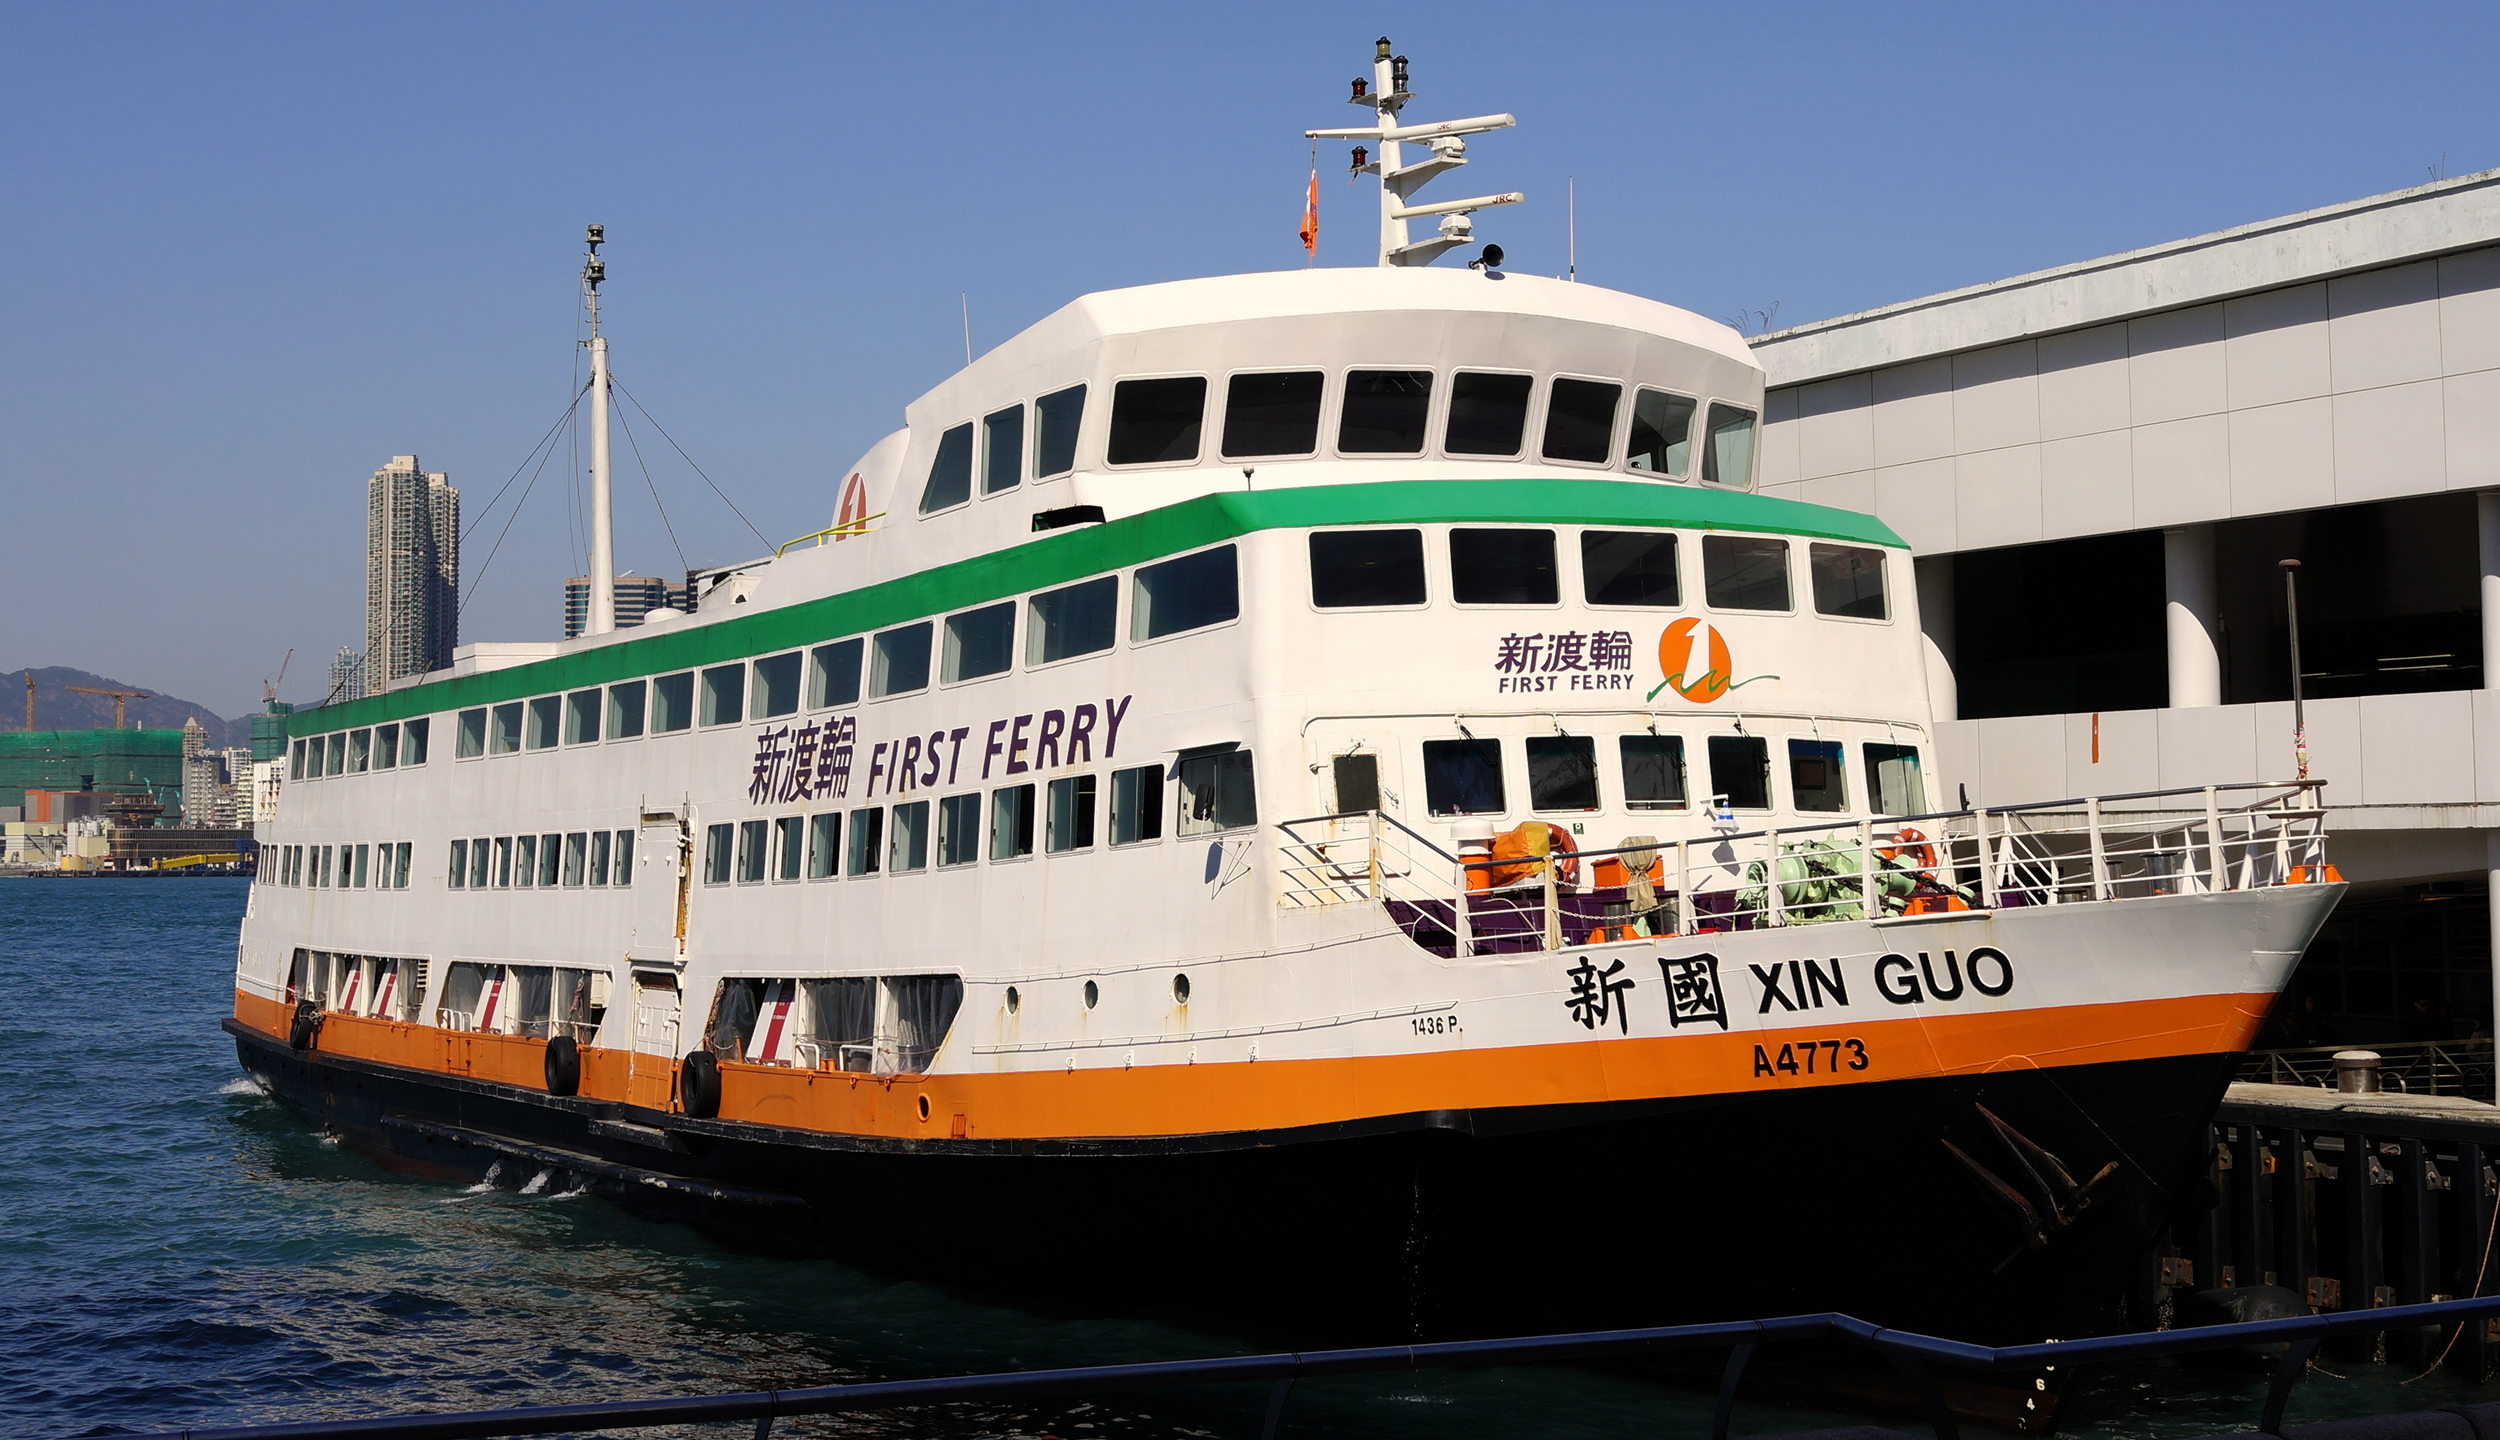 I frequently travel on the slow ferry to Cheung Chau like this one... I love the outdoor deck.